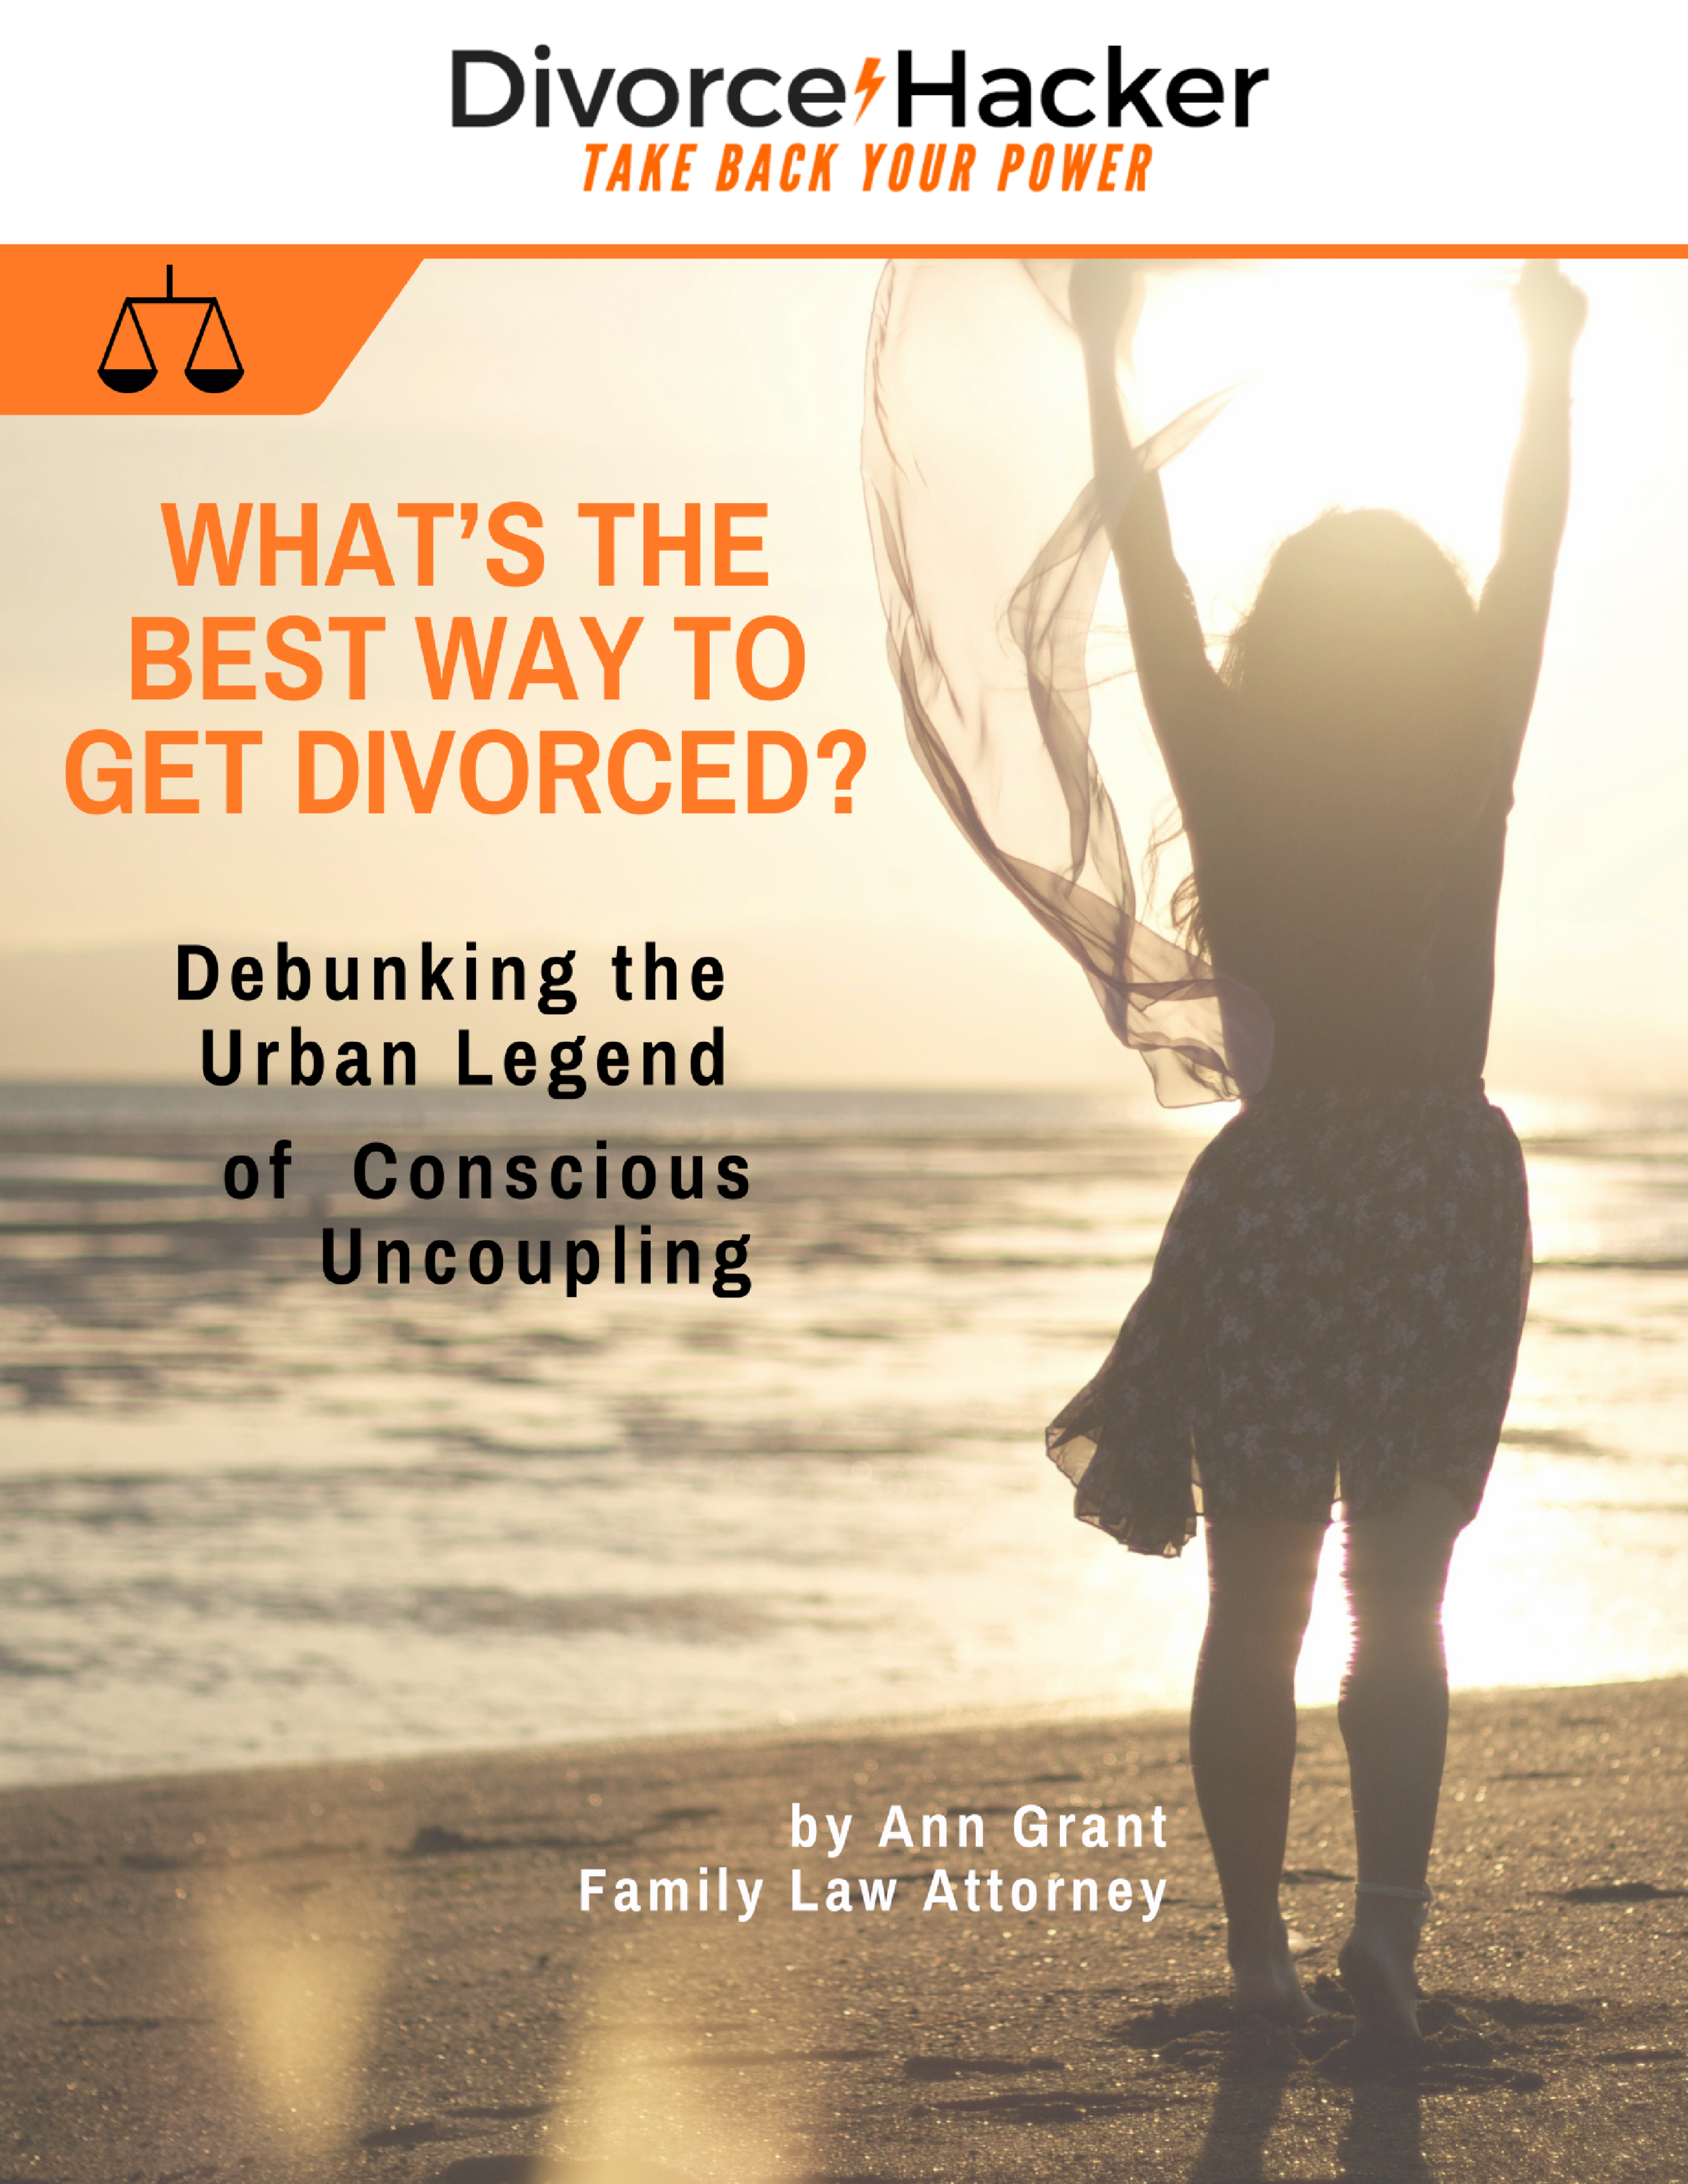 WHAT'S THE BEST WAY TO GET DIVORCED?      Debunking the Urban Legend of      Conscious Uncoupling